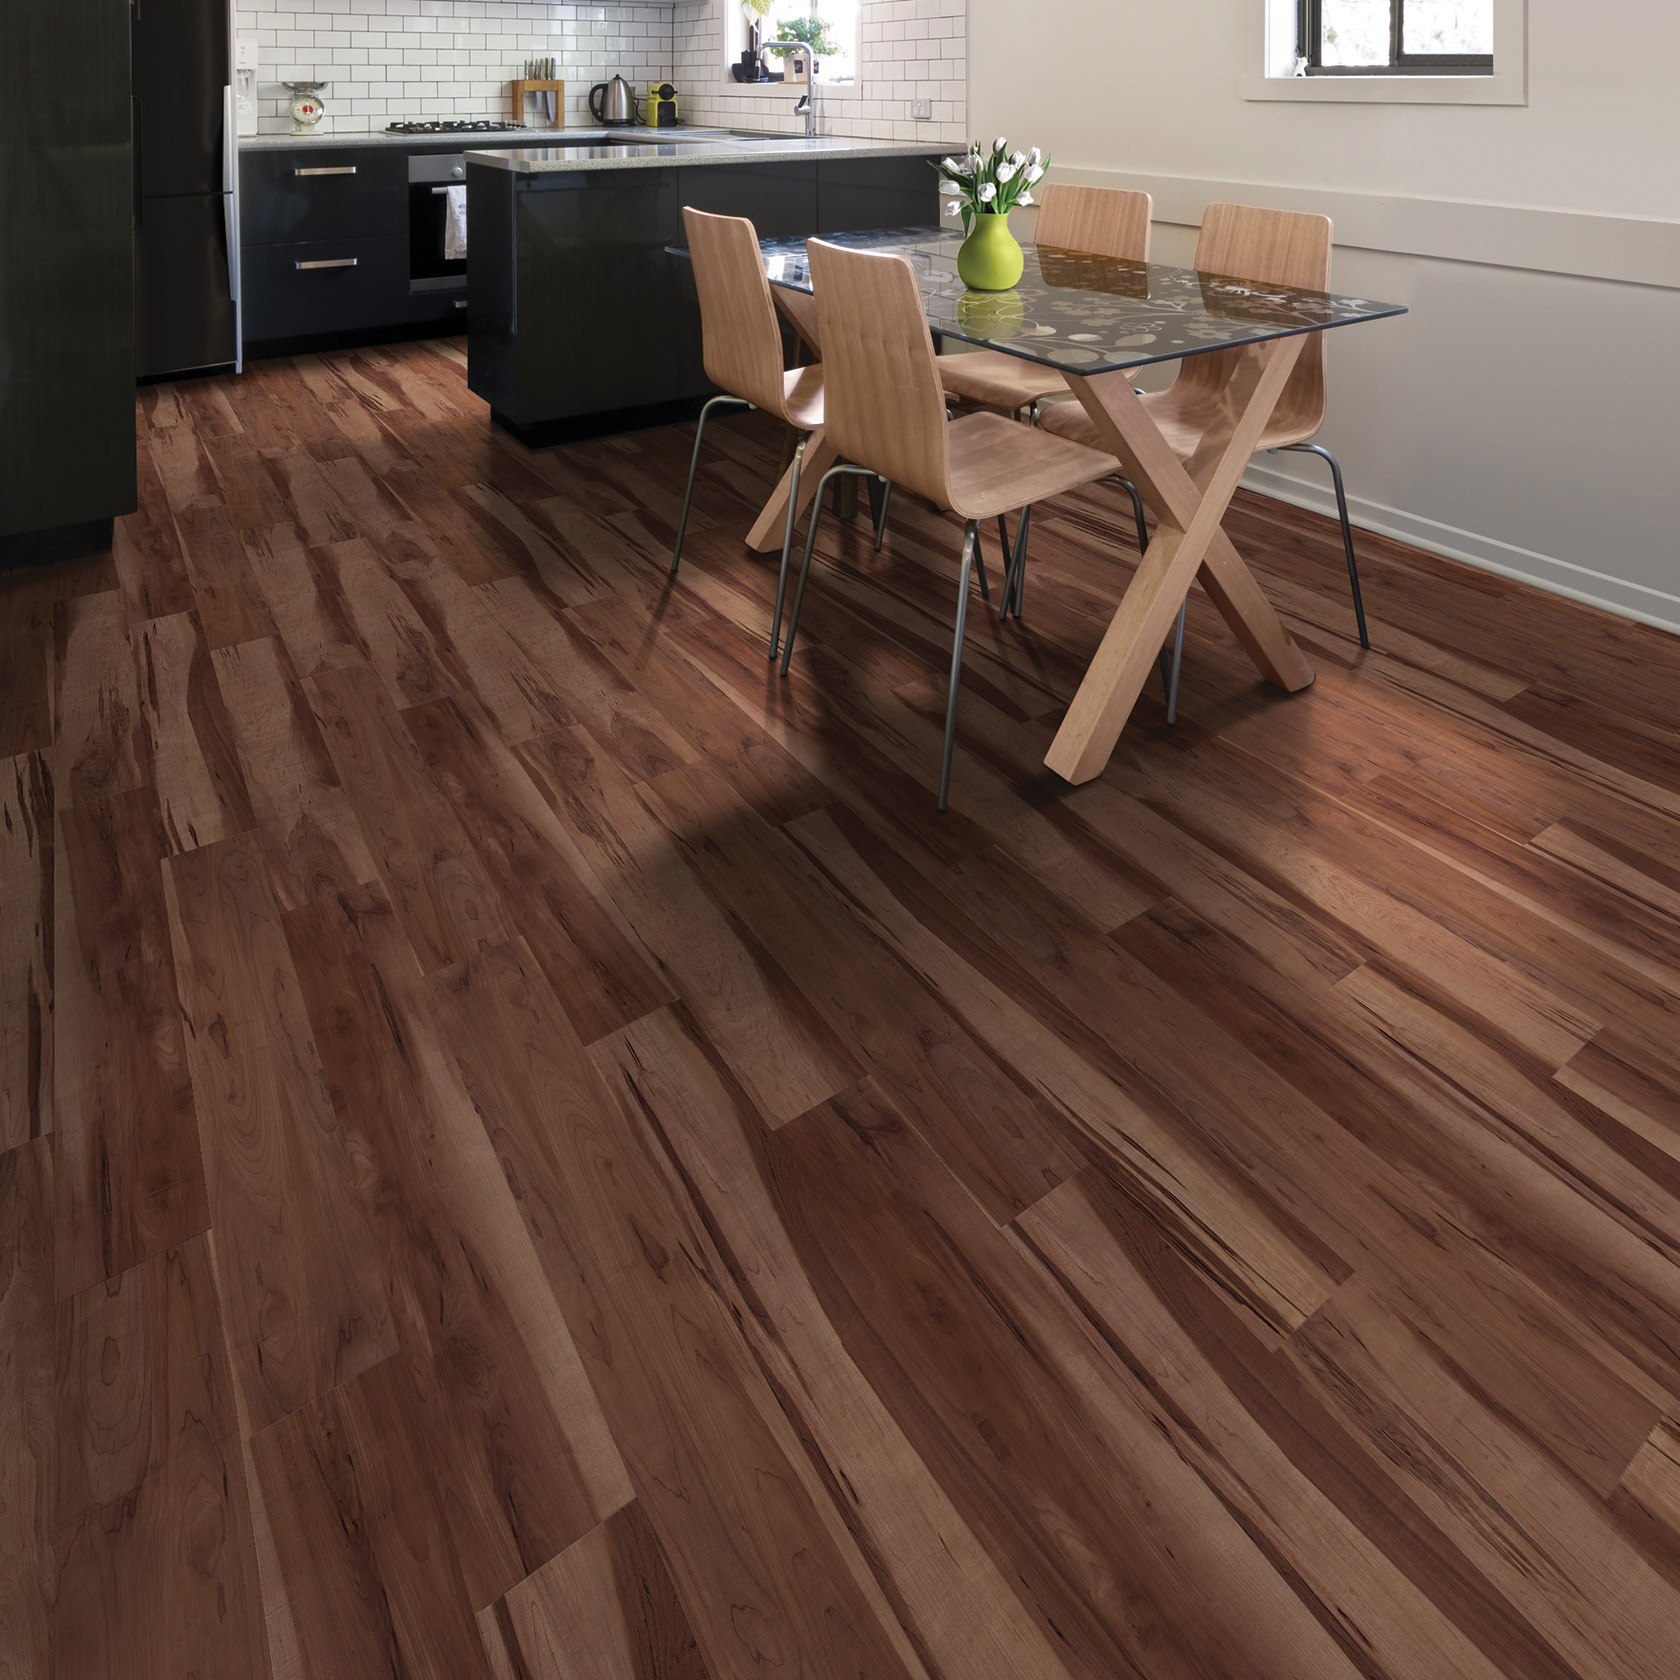 Care Free Sheet Vinyl Flooring Is Perfect For Kitchens It: Presslock Plank